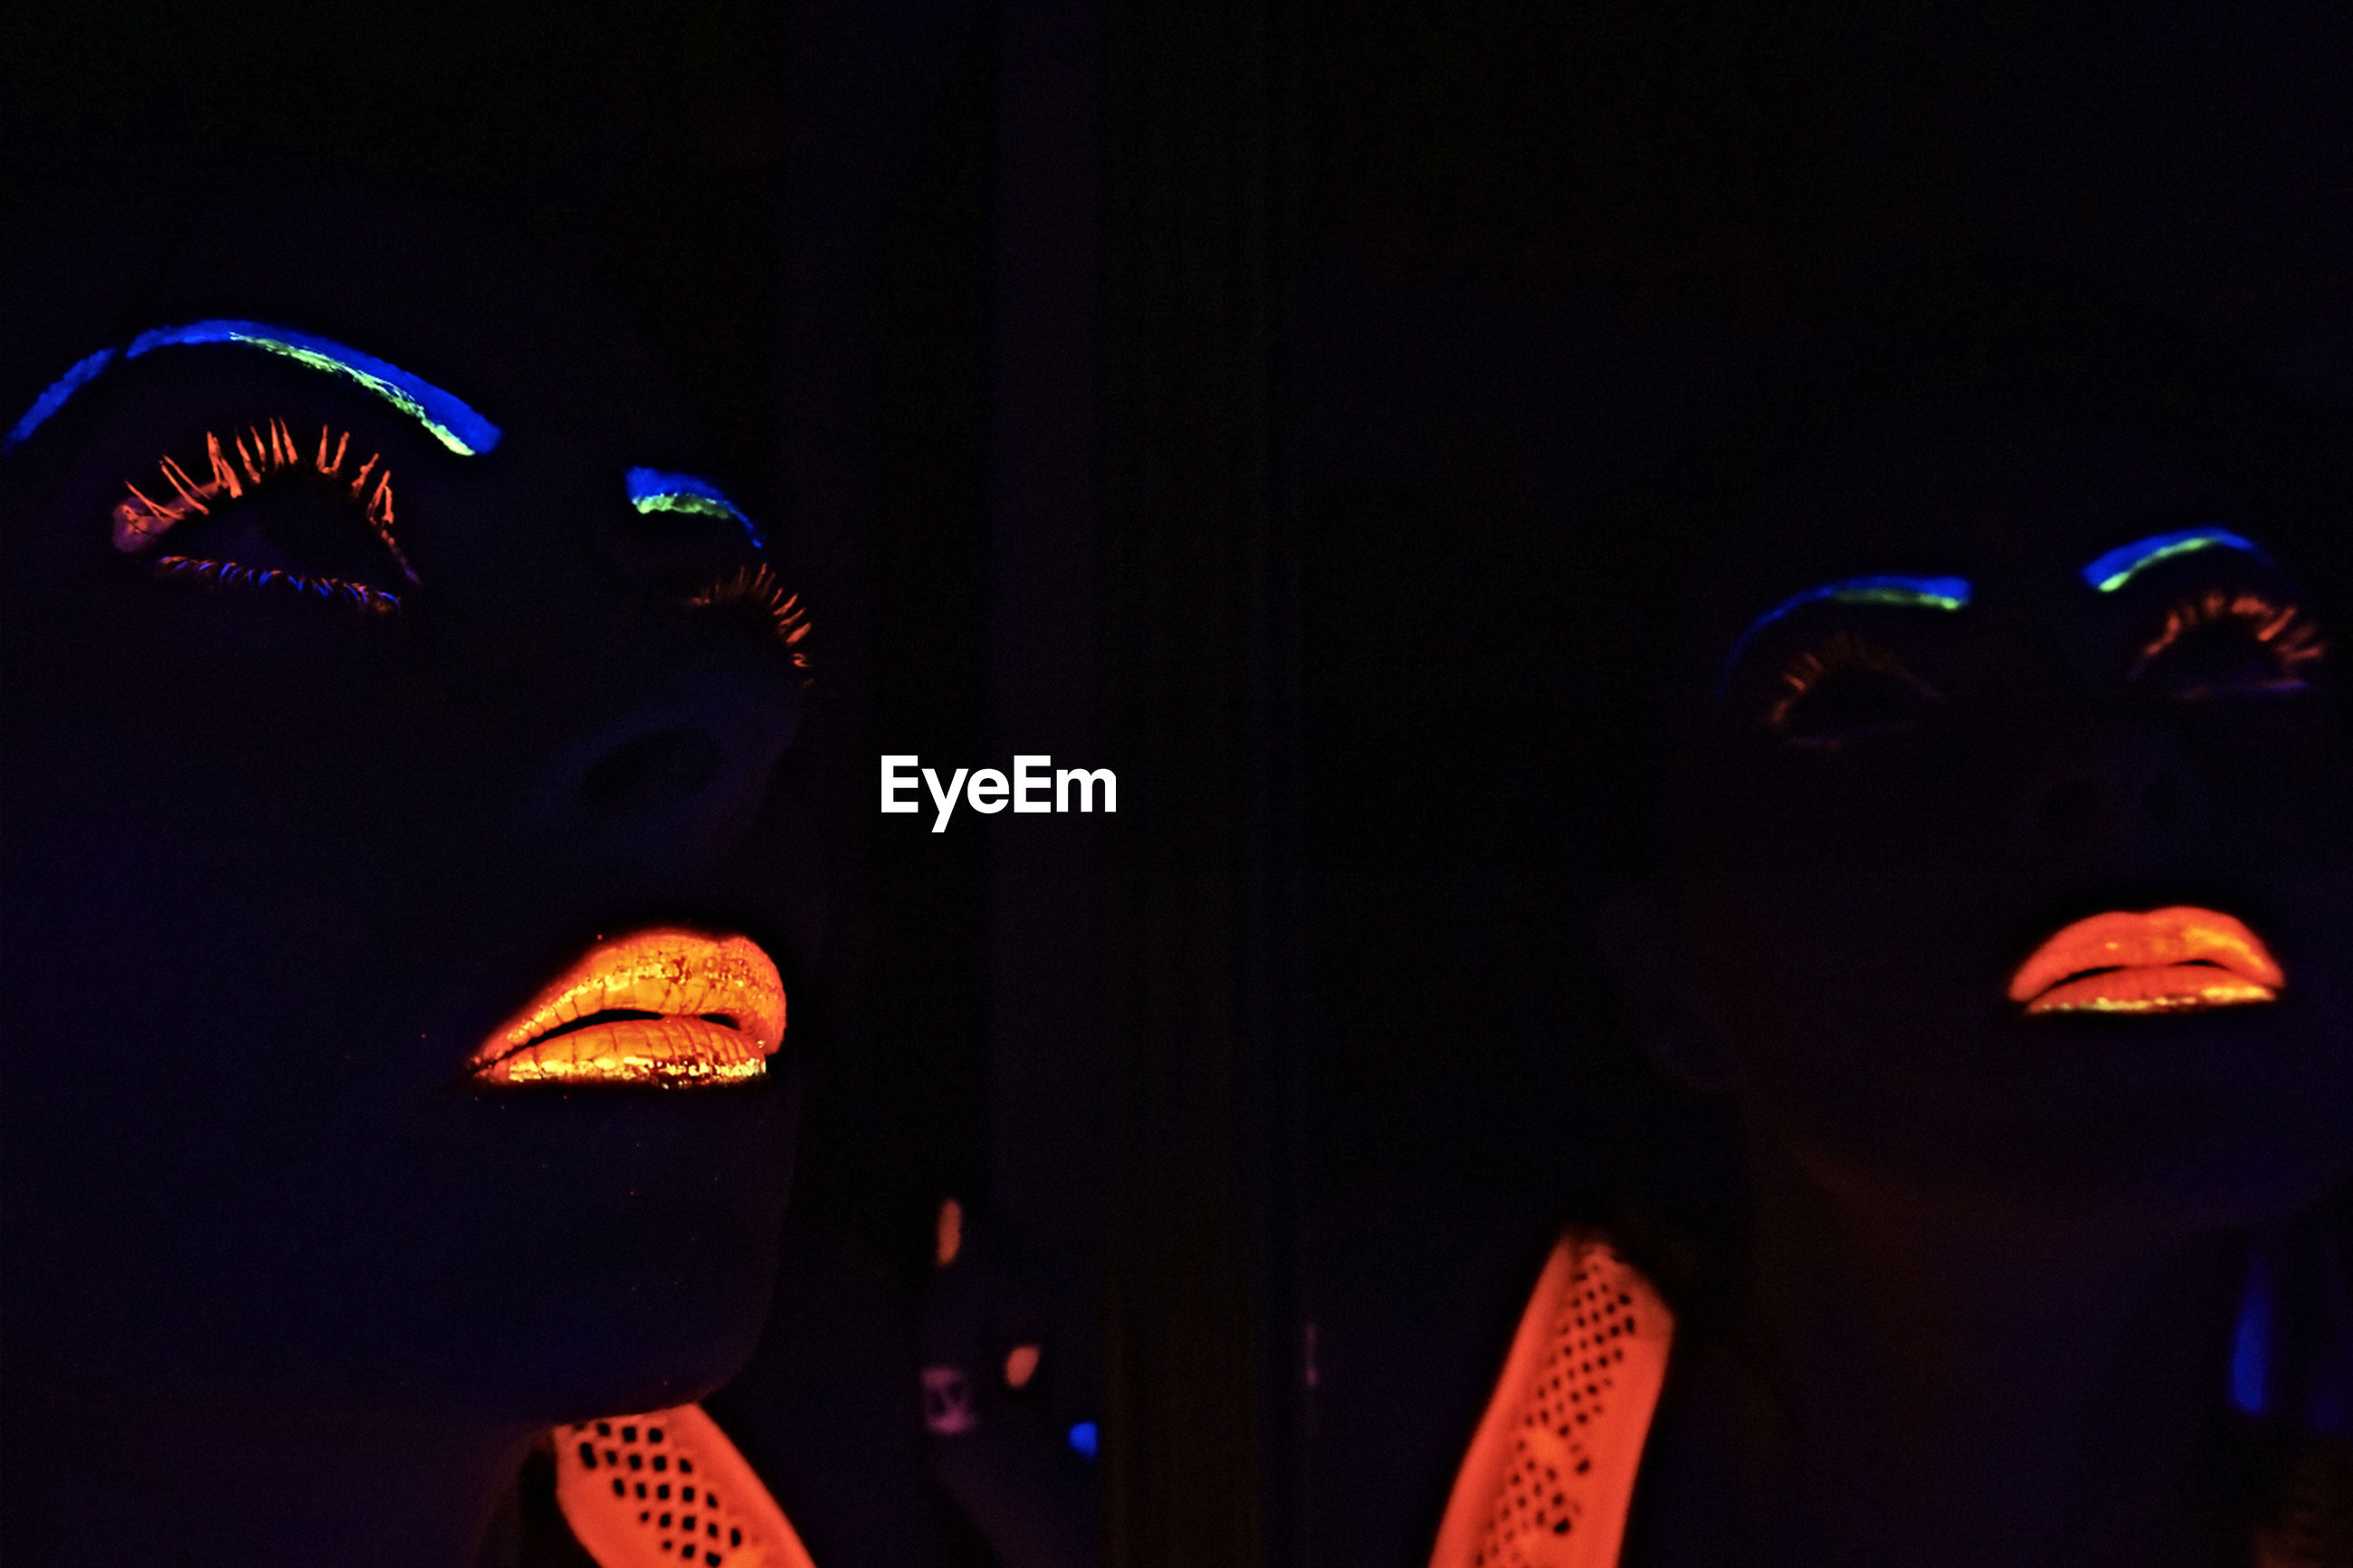 Reflection of woman with neon face paint on mirror